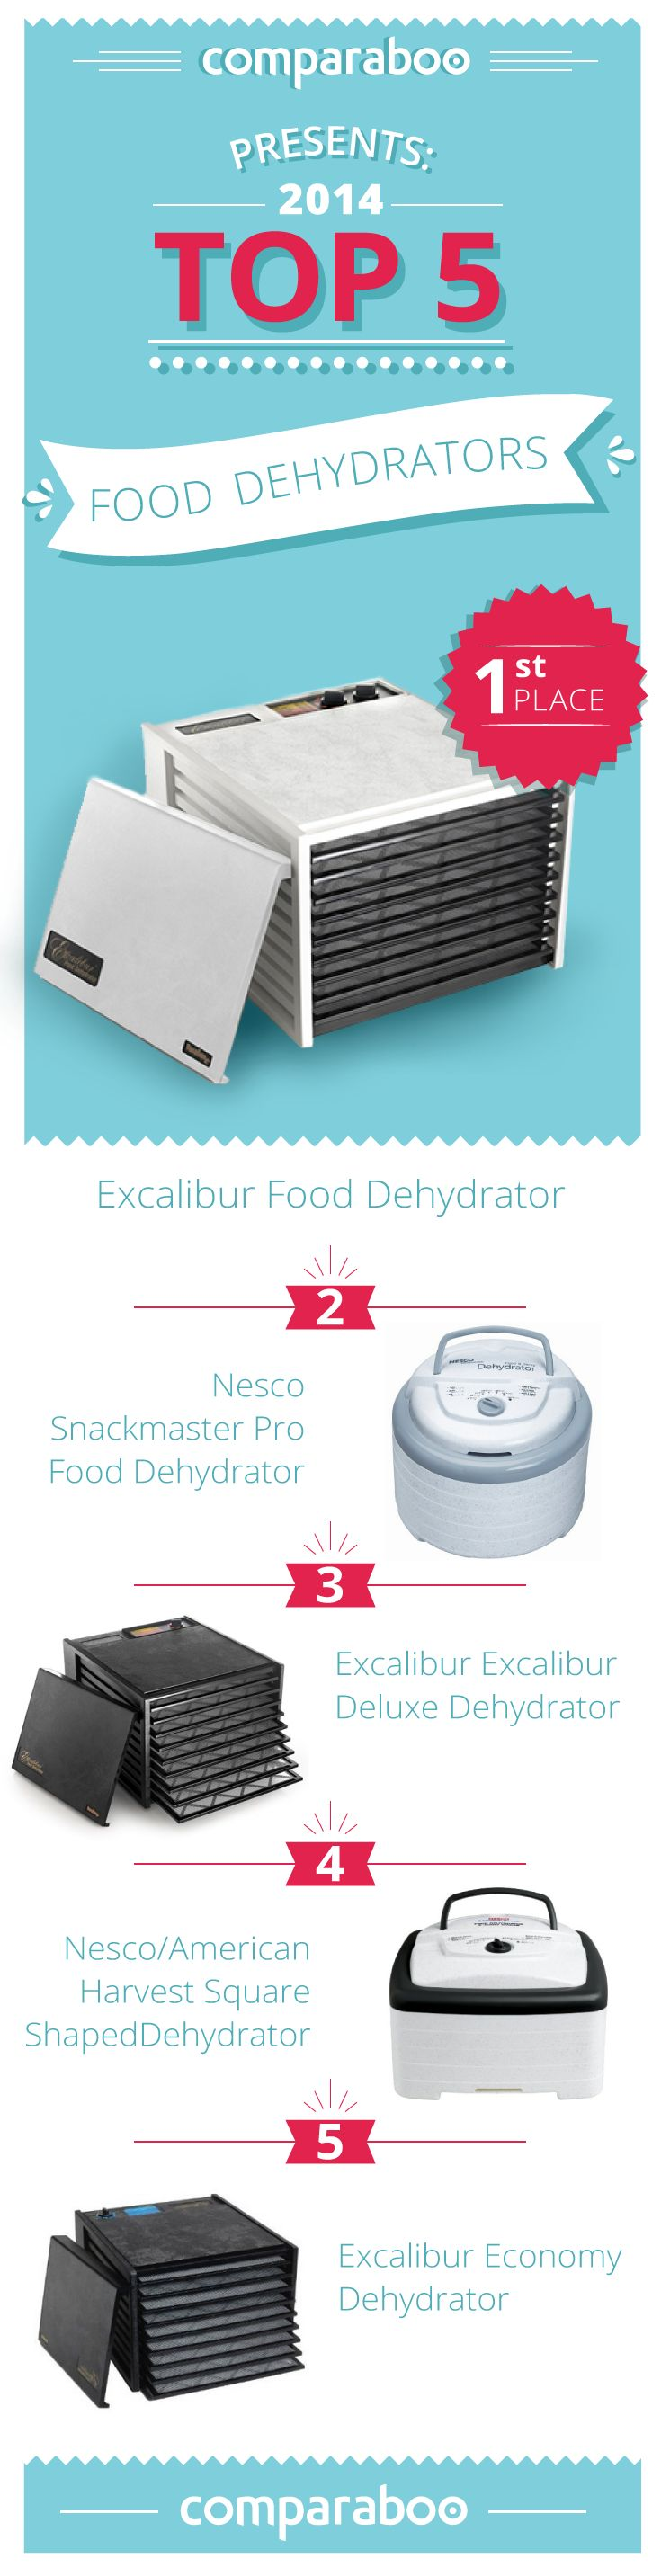 I want Excalibur. Finding the perfect food dehydrator comes with a lot of decisions: removable shelves vs stackable trays, small vs big size, base-mounted fan vs rear-mounted fan vs convection drying, and so on! That's why Comparaboo has compiled a list of top 10 food dehydrators: http://www.comparaboo.com/food-dehydrators #dehydrate